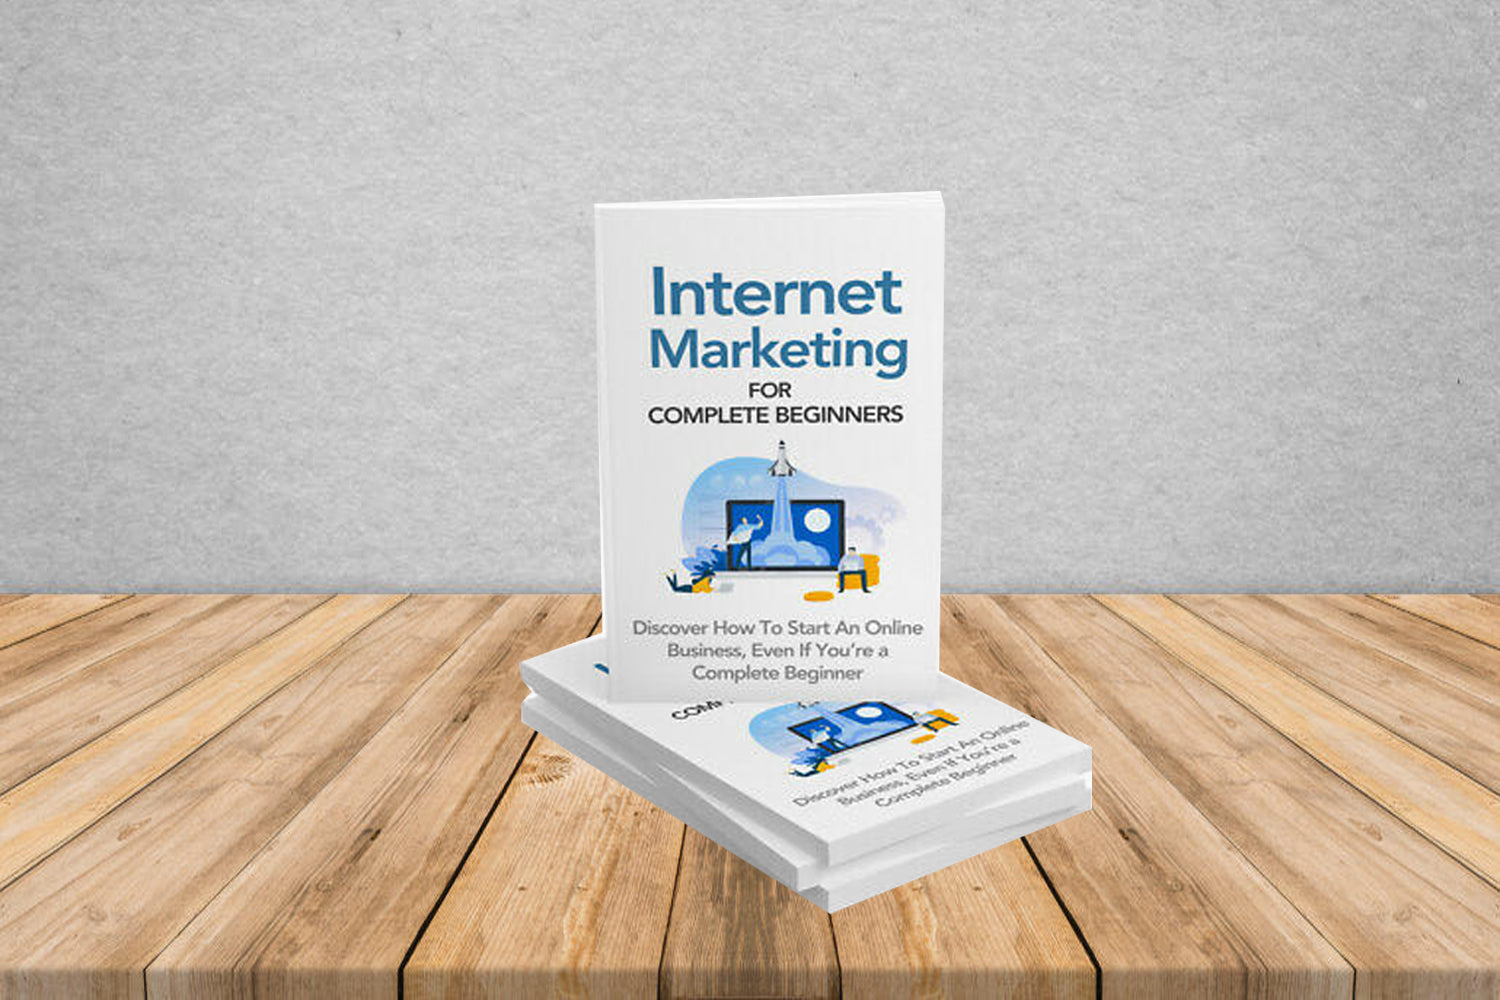 Internet Marketing For Complete Beginners – Discover How To Start An Online Business, Even If You're A Complete Beginner